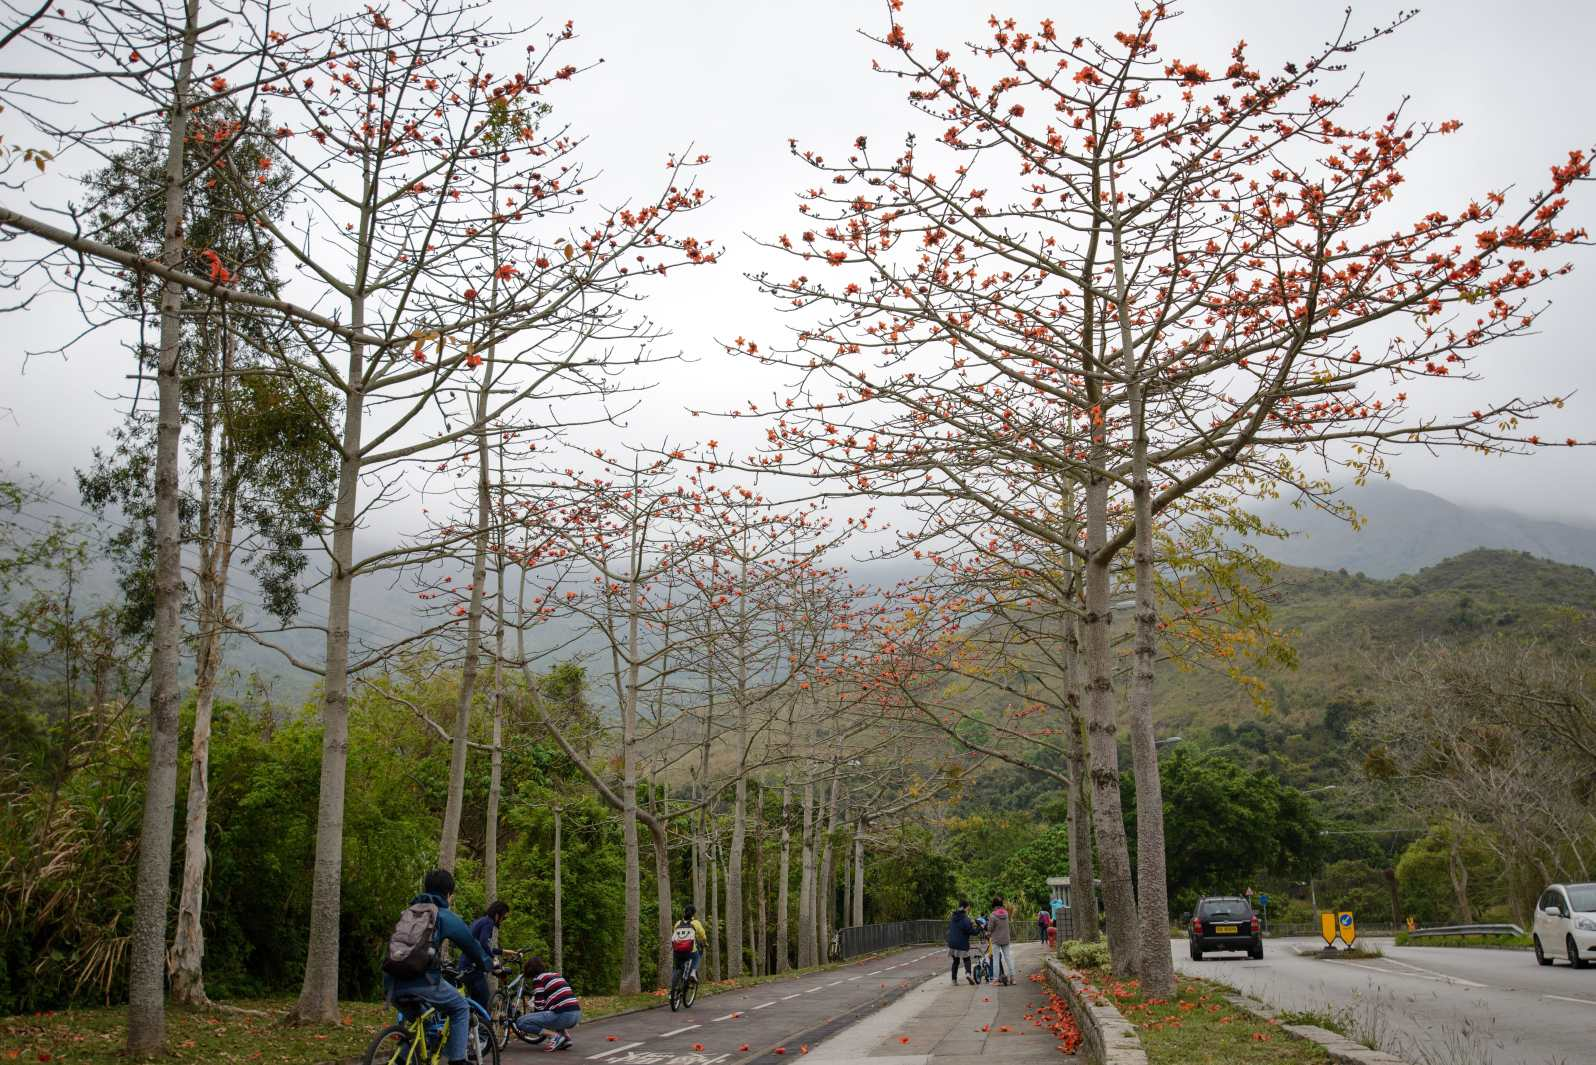 Cotton Tree (Bombax Ceiba) with flaming red flowers along Ting Kok Road